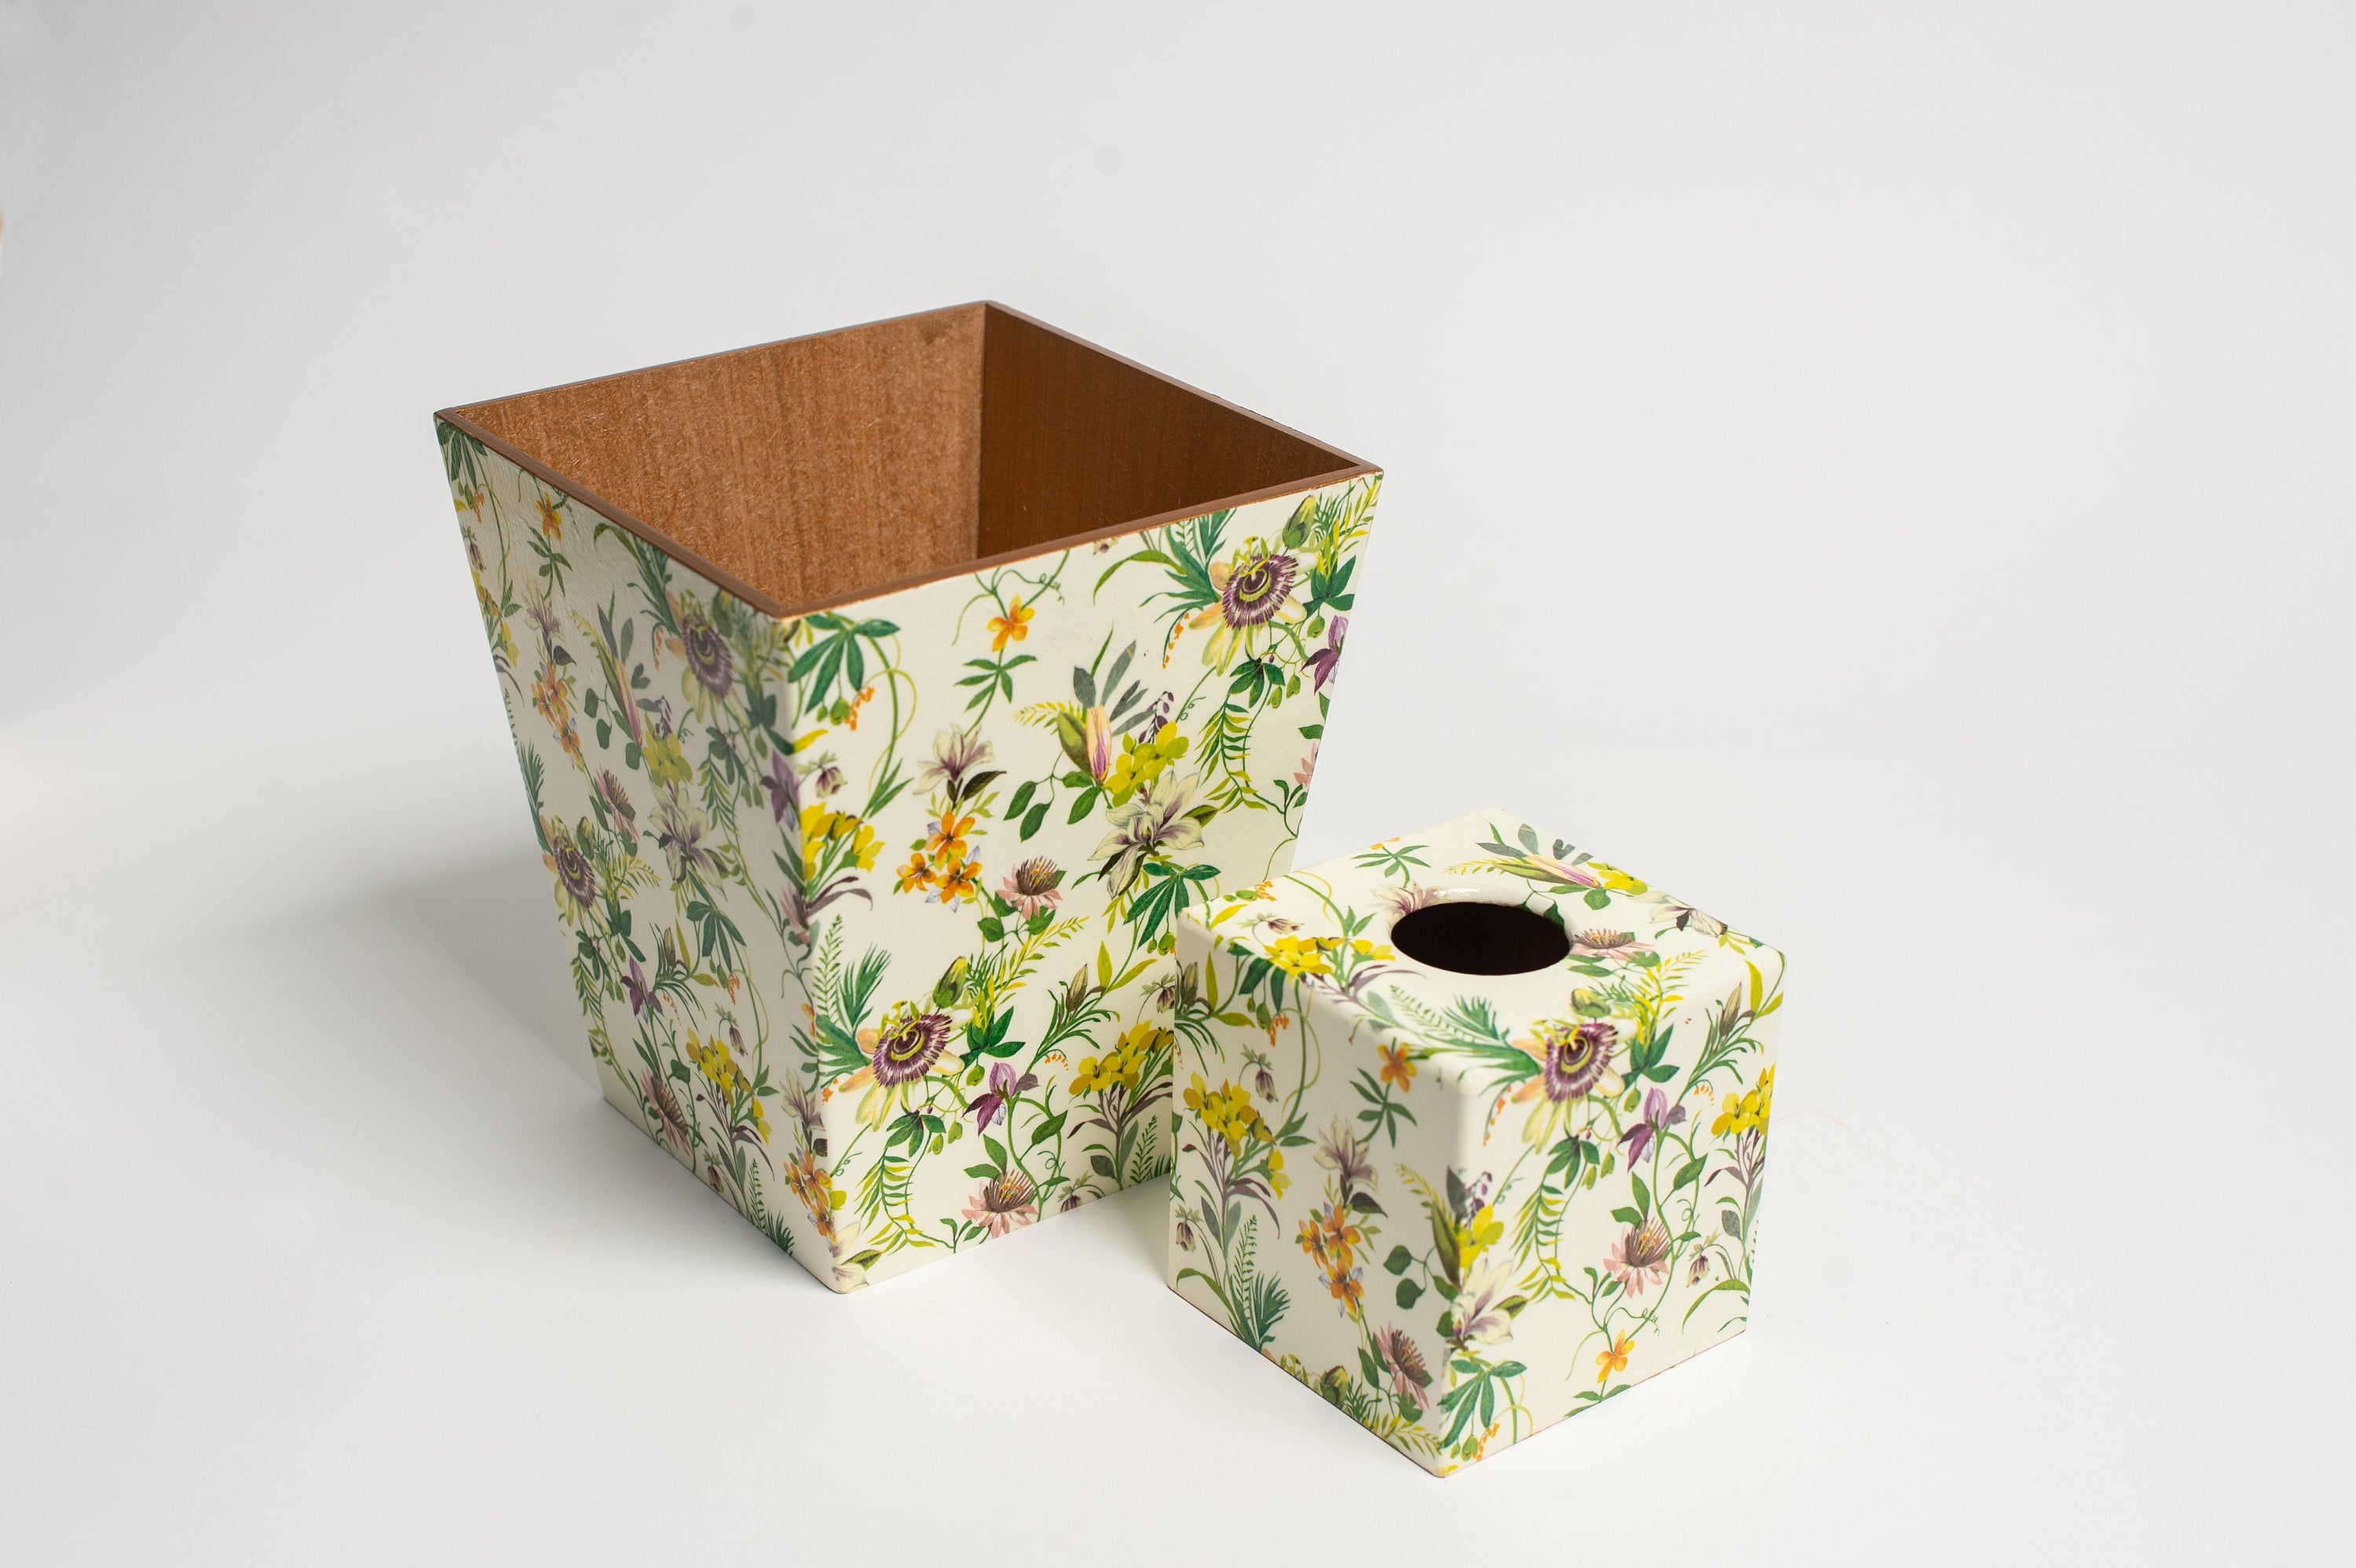 Passion Flower Waste Paper Bin & Tissue Box Cover Set | Crackpots